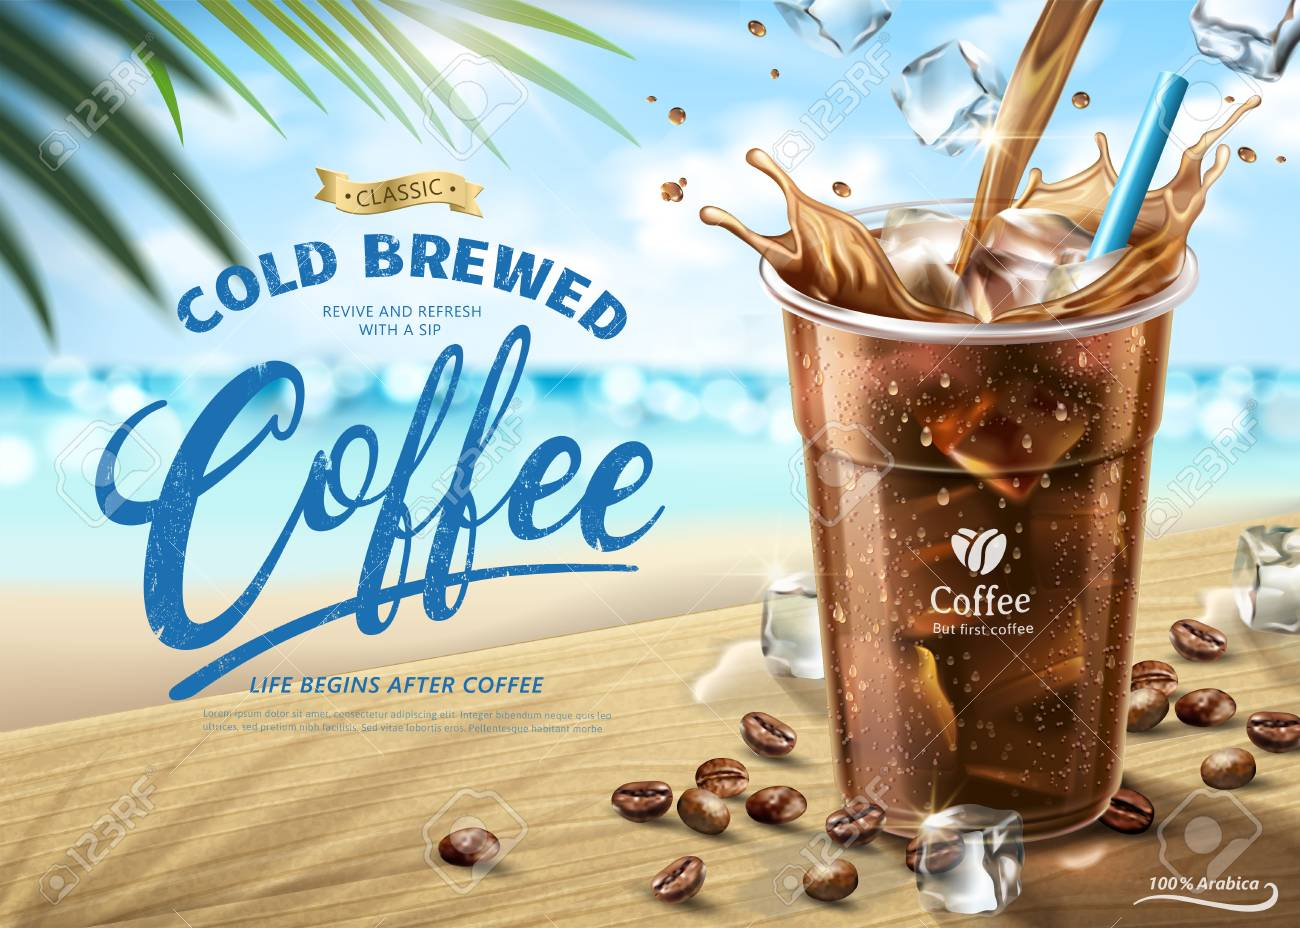 Cold brewed coffee ads on hot summer beach scene in 3d illustration - 102958625